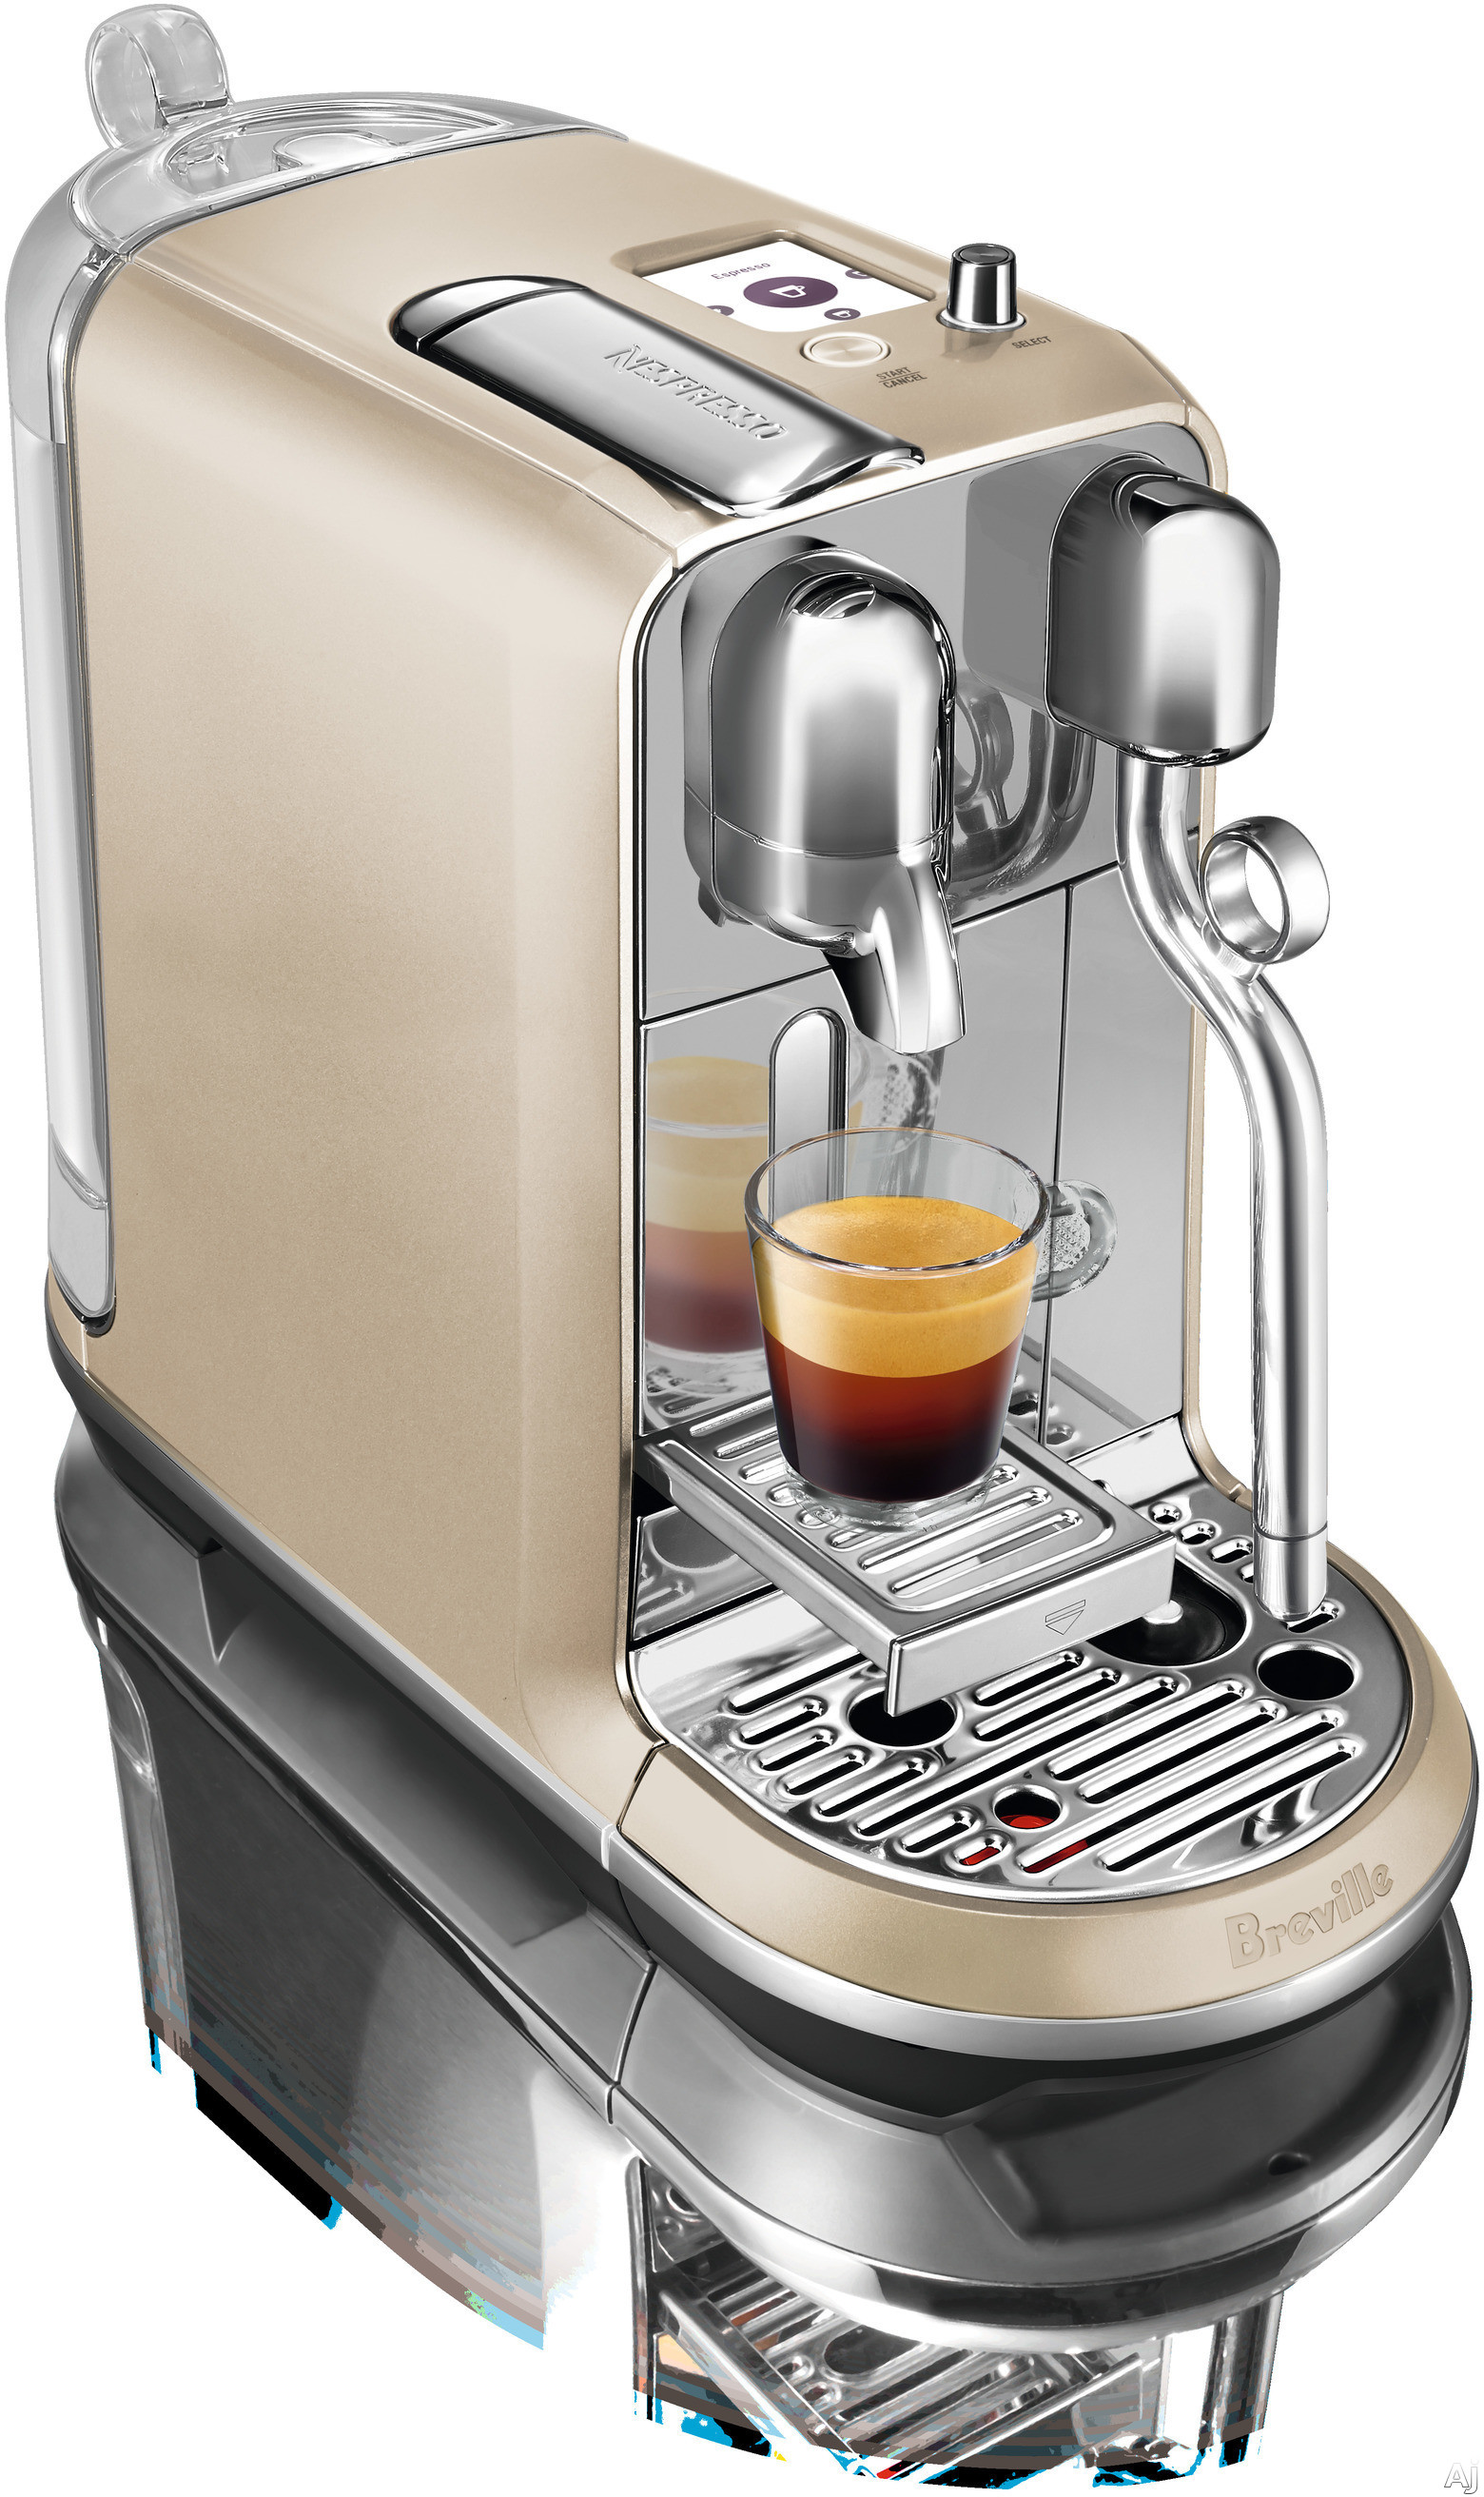 Breville BNE600RCH Creatista Espresso Machine with 8 One Touch Presets, Auto Frothing, Fast Heat-Up, Auto-Off, TFT Display, Nespresso Capsule Tasting Pack and High-Pressure Pump: Royal Champagne